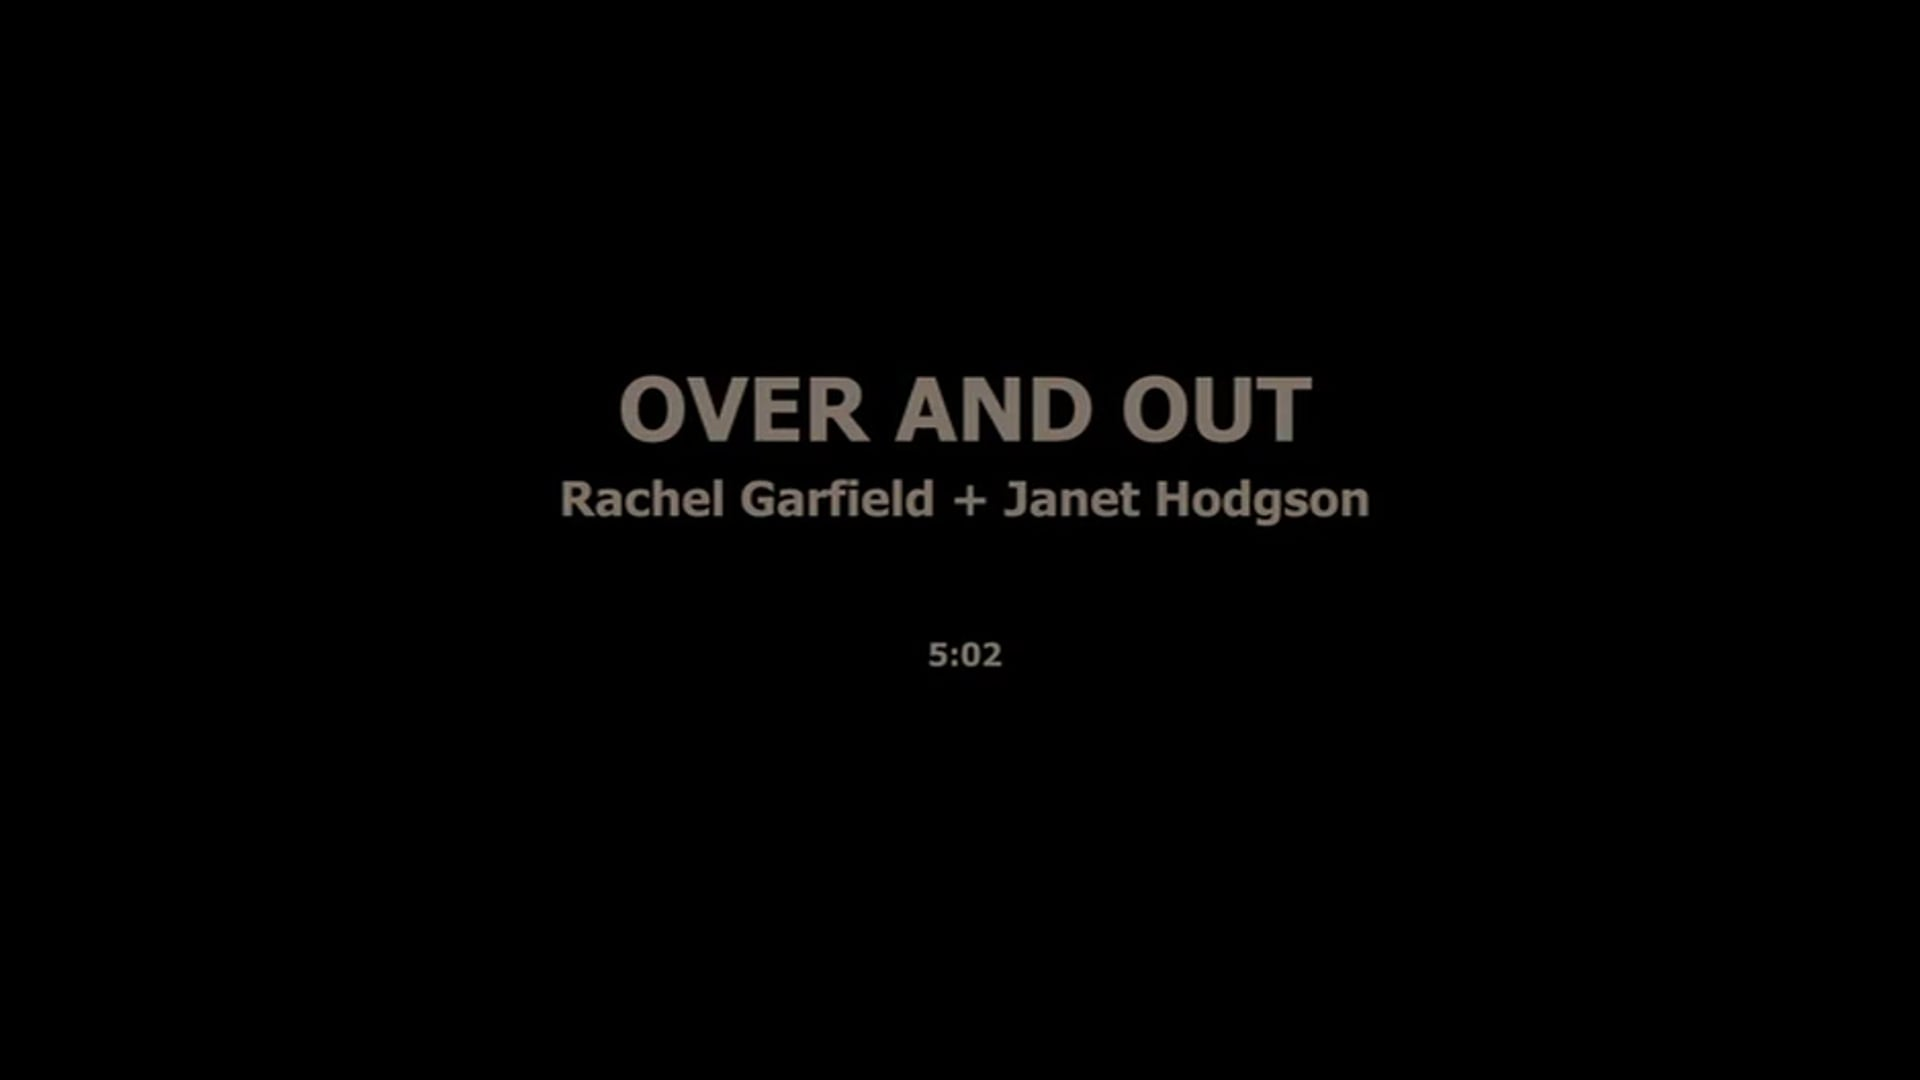 OVER AND OUT - RACHEL GERFIELD, JANET HODGSON